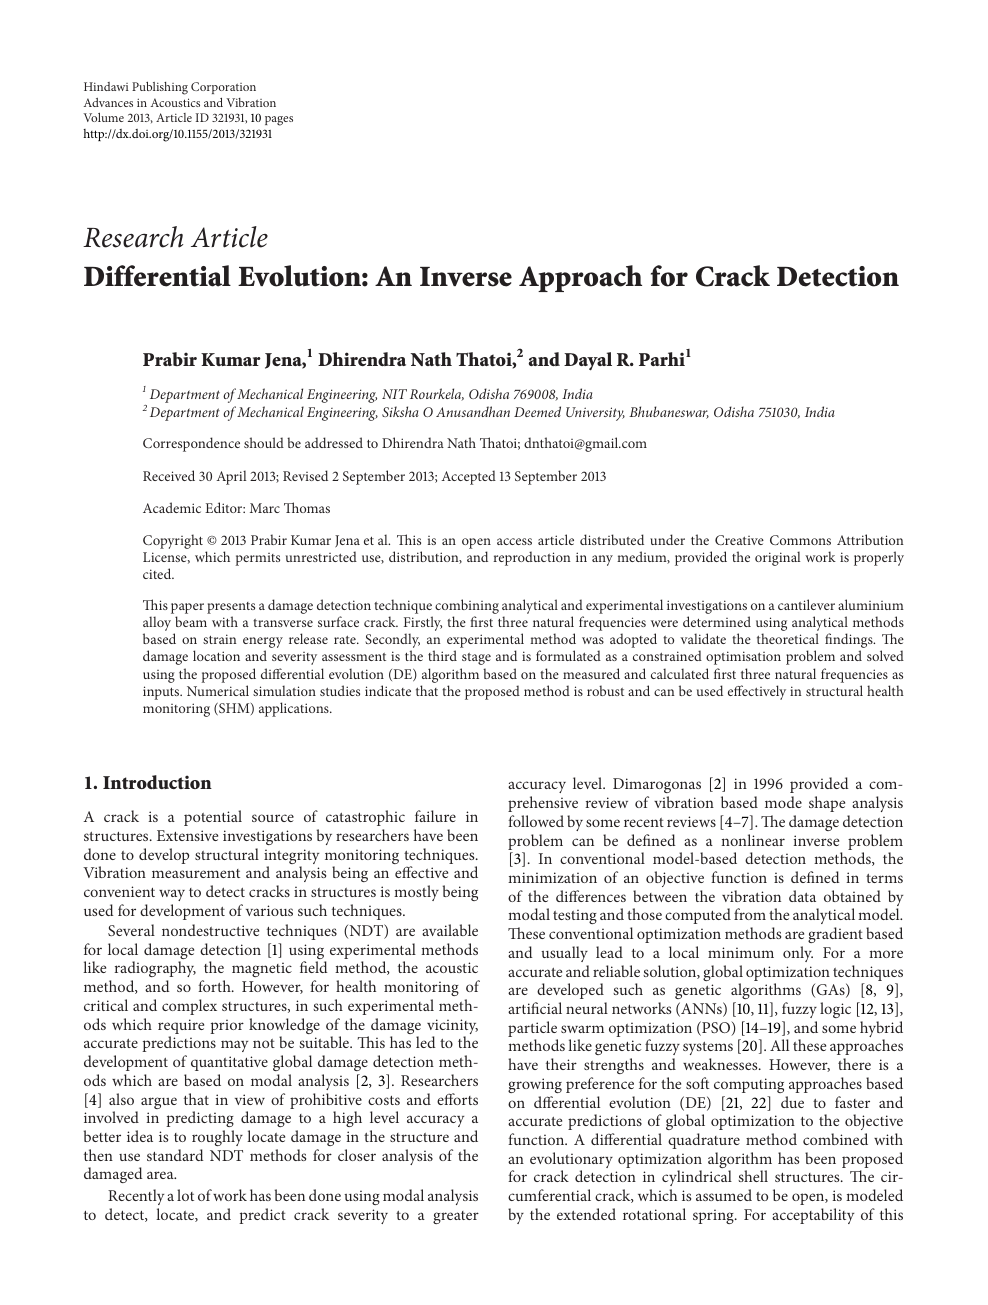 Differential Evolution: An Inverse Approach for Crack Detection